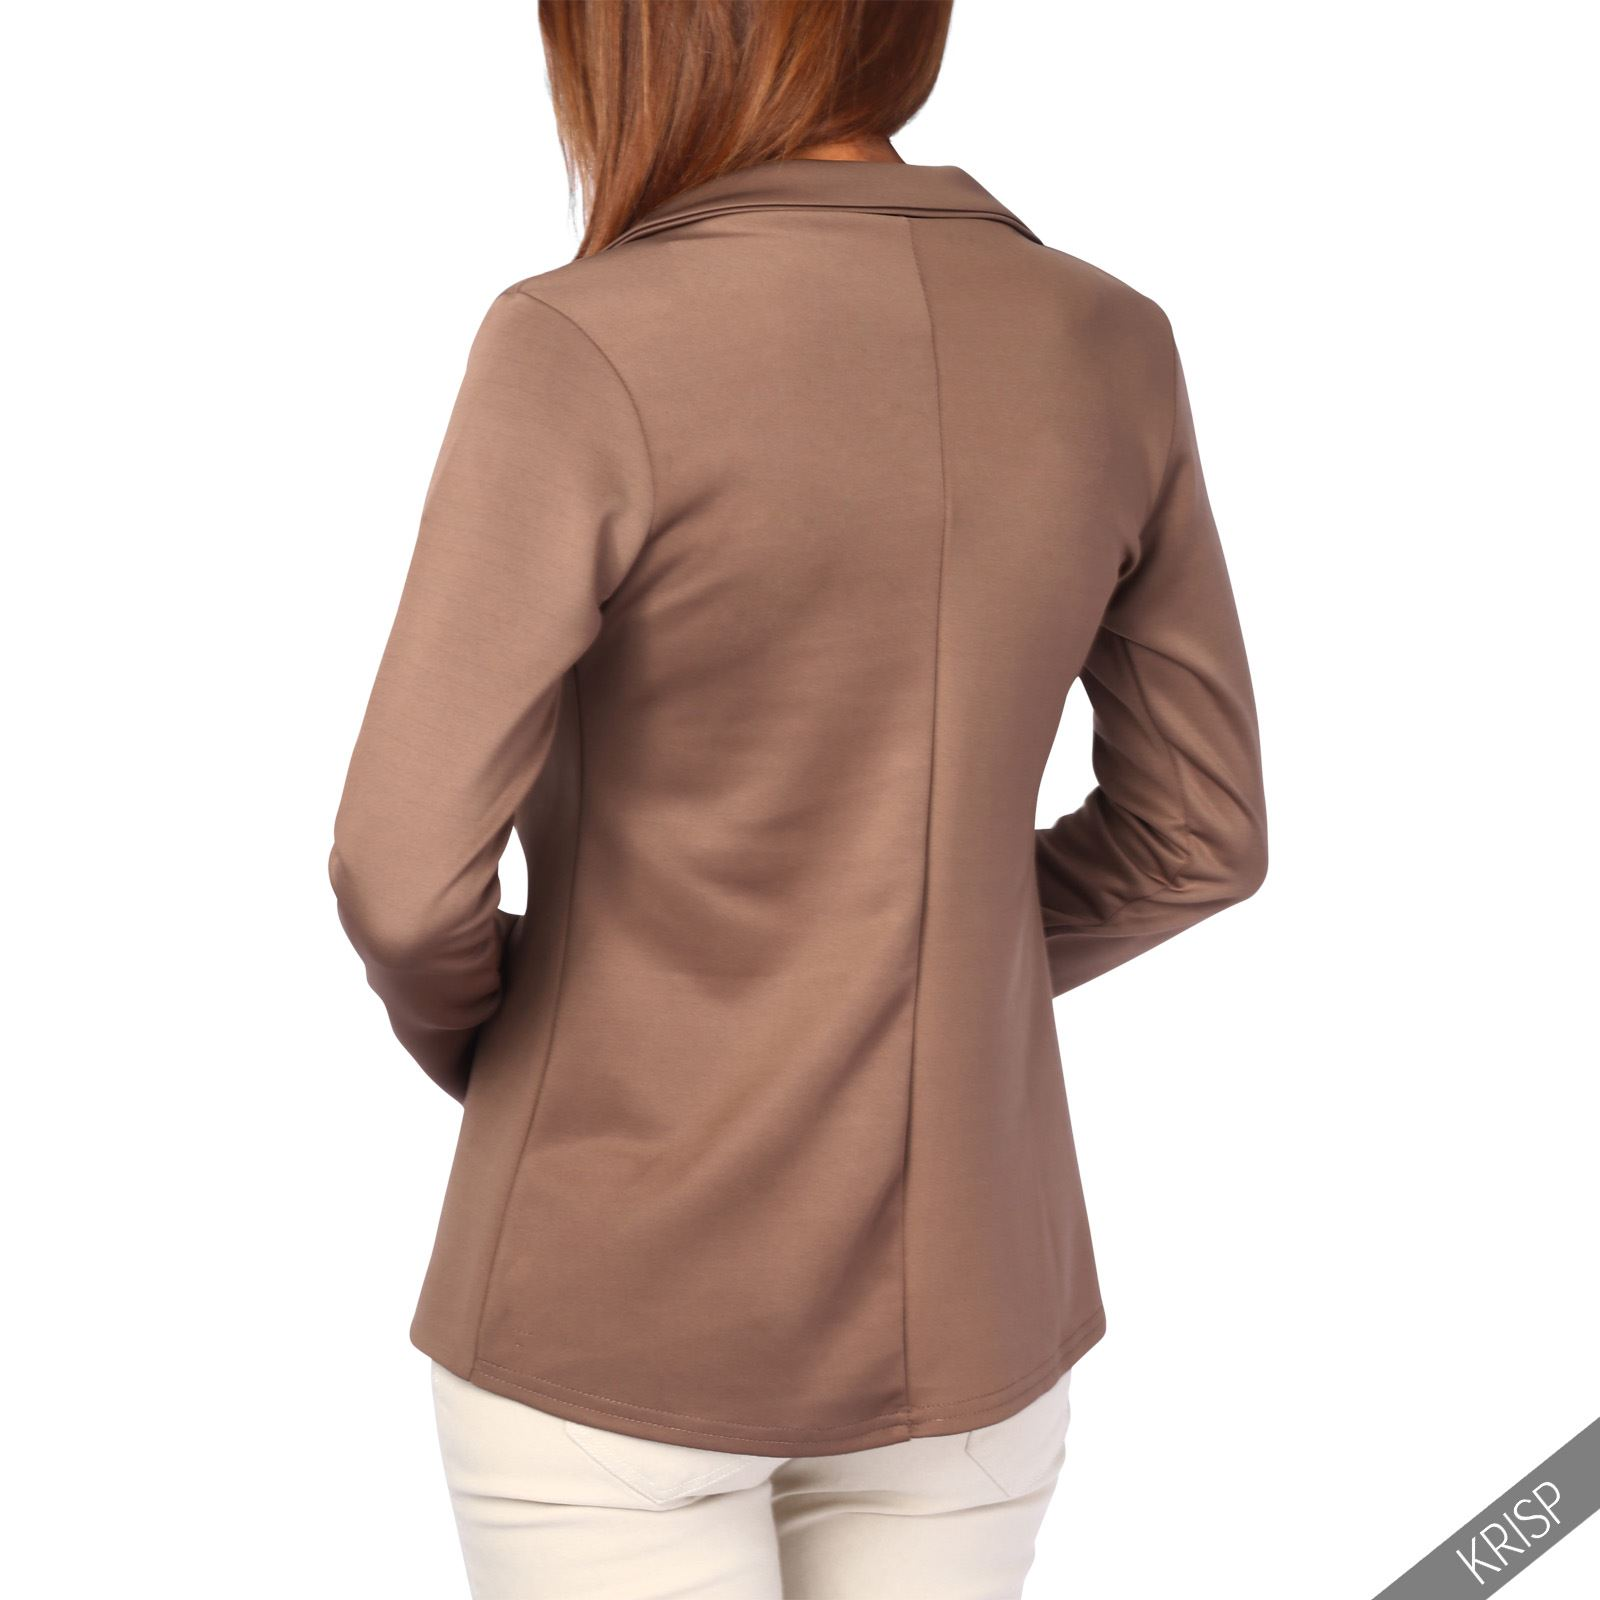 Womens-Jacket-Shrug-Casual-Blazer-Jersey-Smart-Suit-Ladies-Office-Evening-Coat thumbnail 17